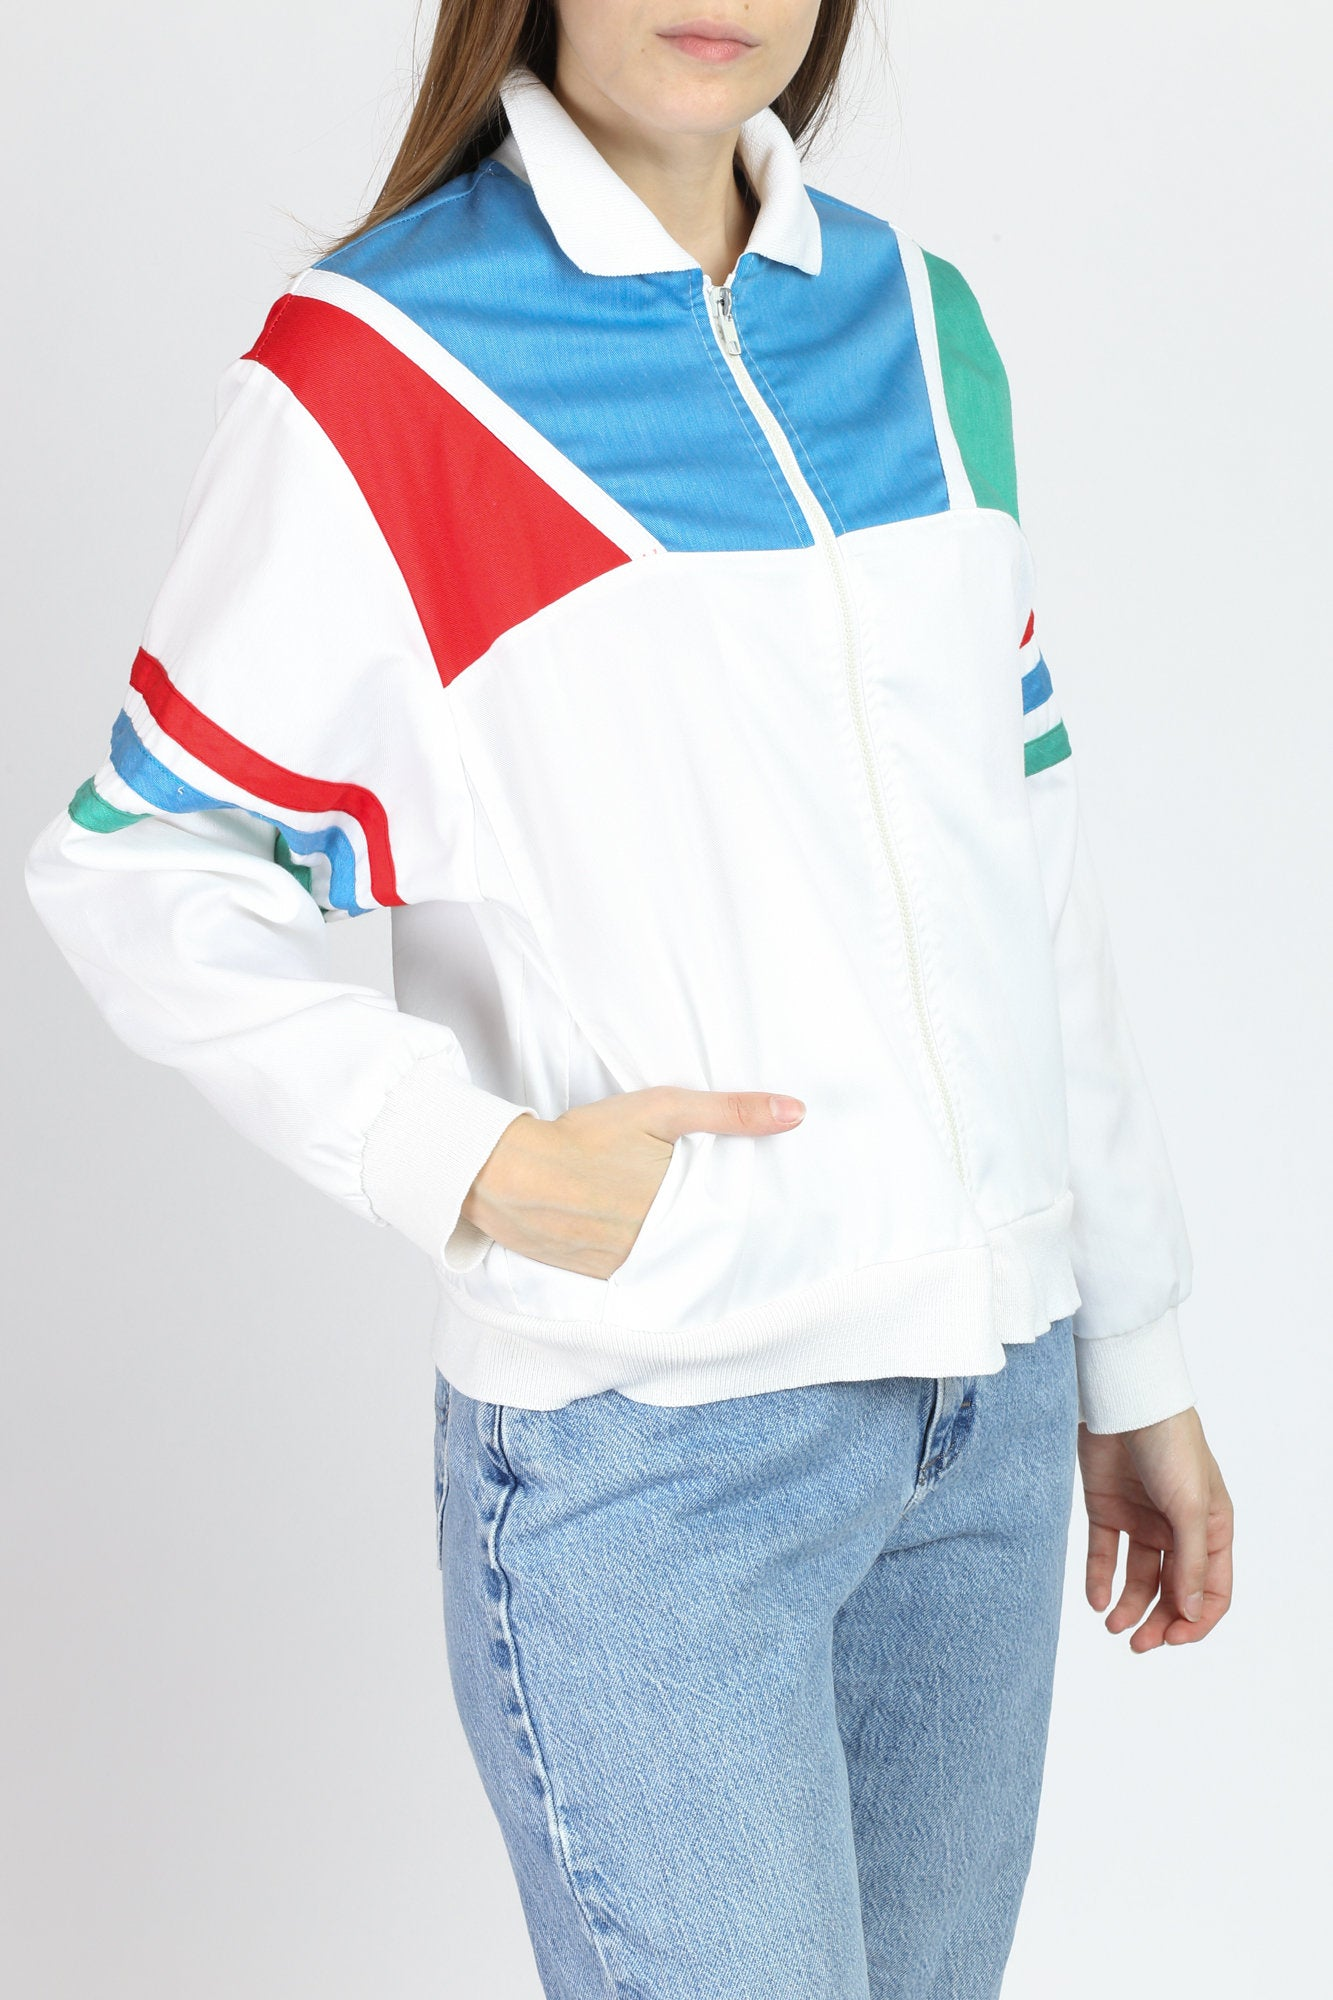 80s Color Block Track Jacket - Medium